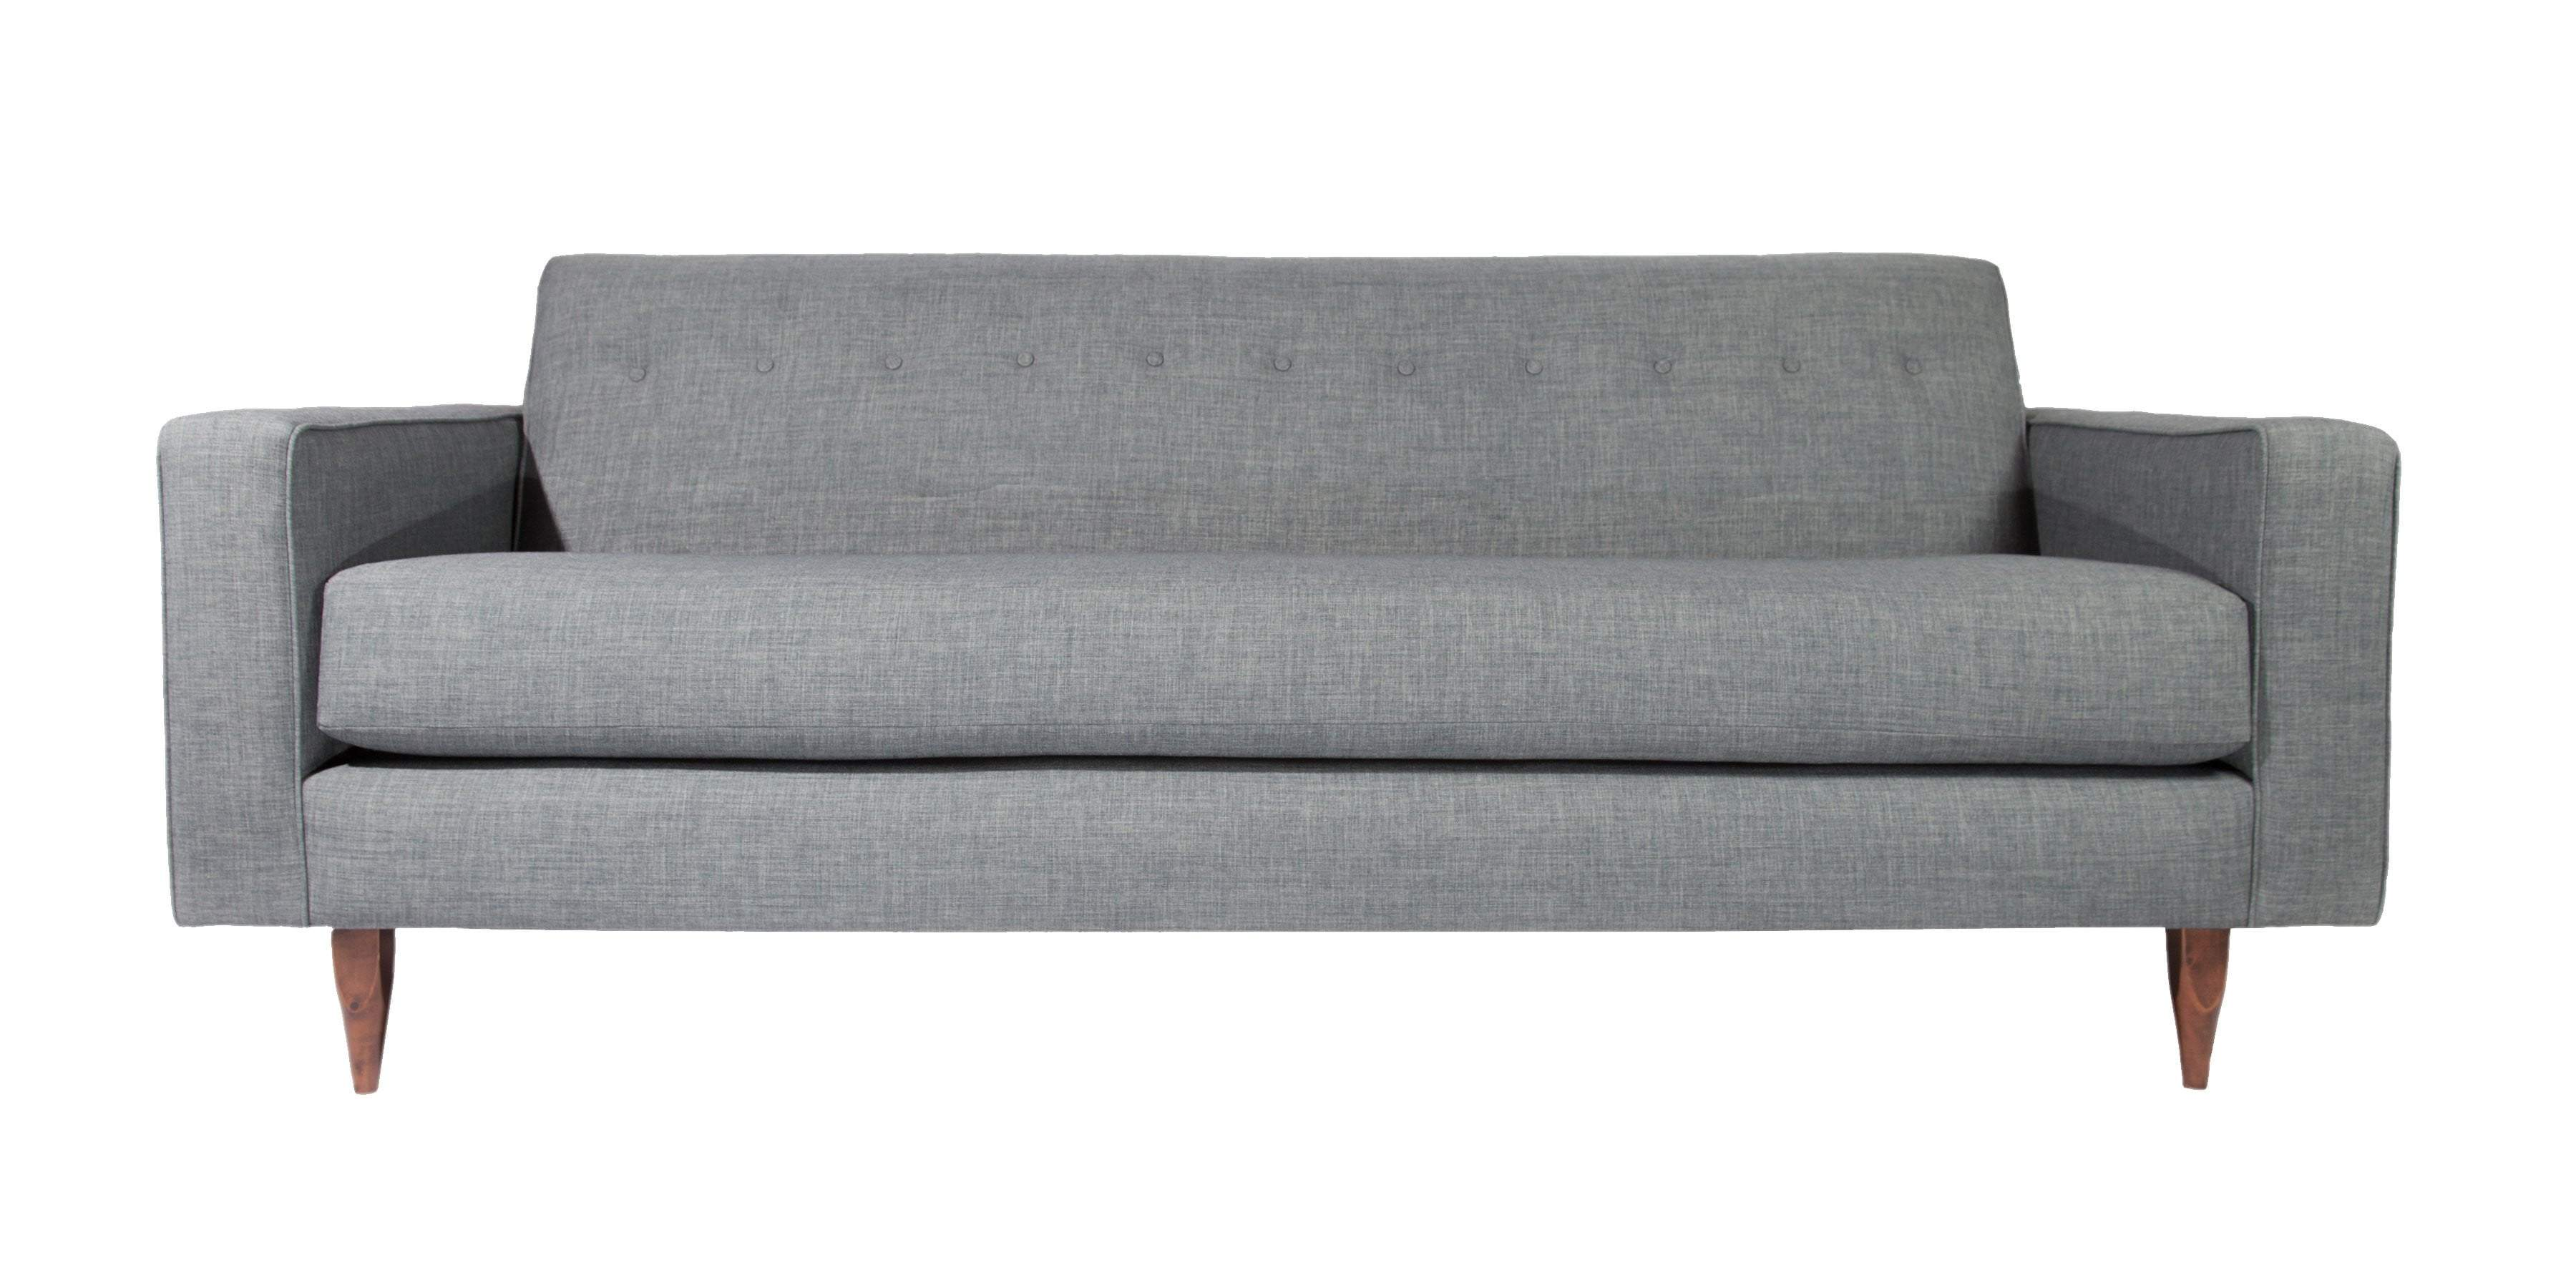 Ashbury Sofa - sofacreations